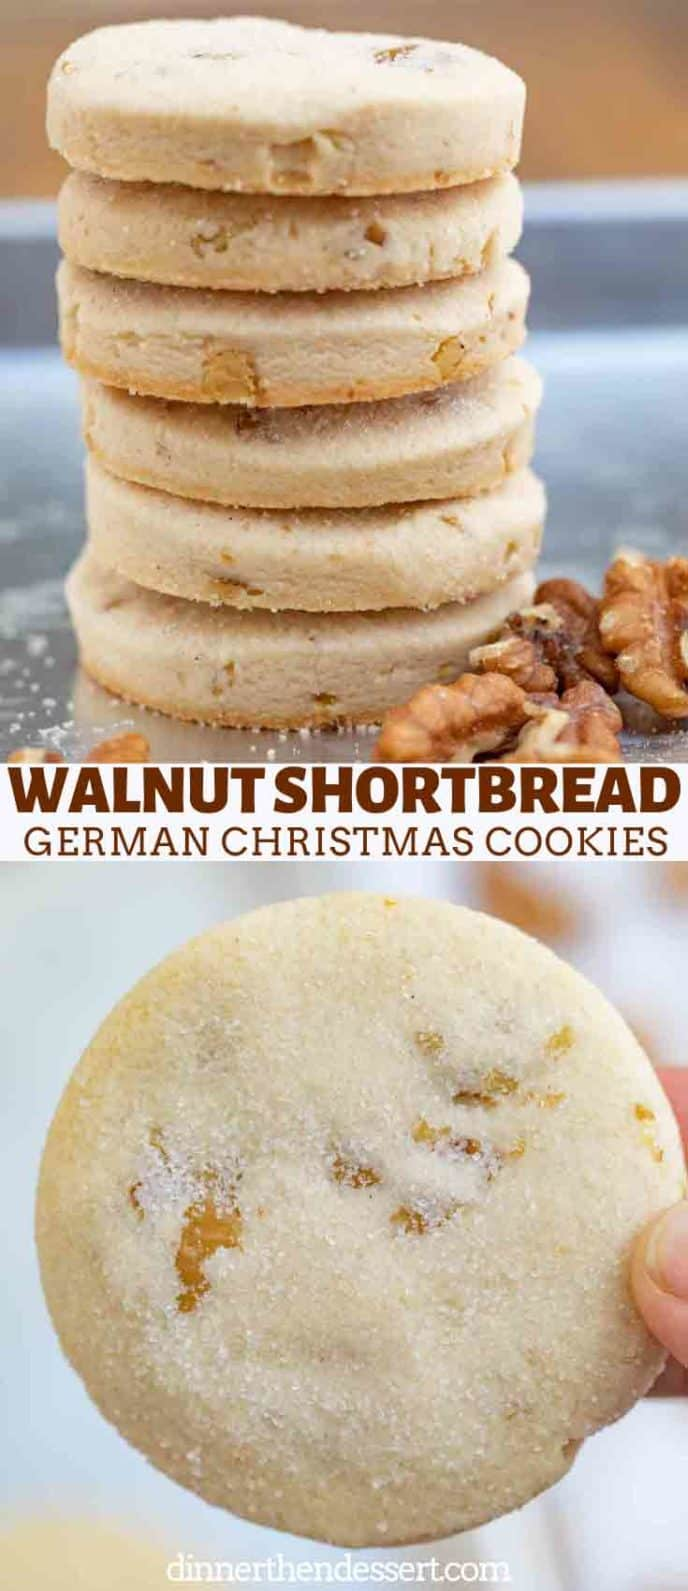 German Christmas Cookies.Walnut Shortbread German Christmas Cookies Dinner Then